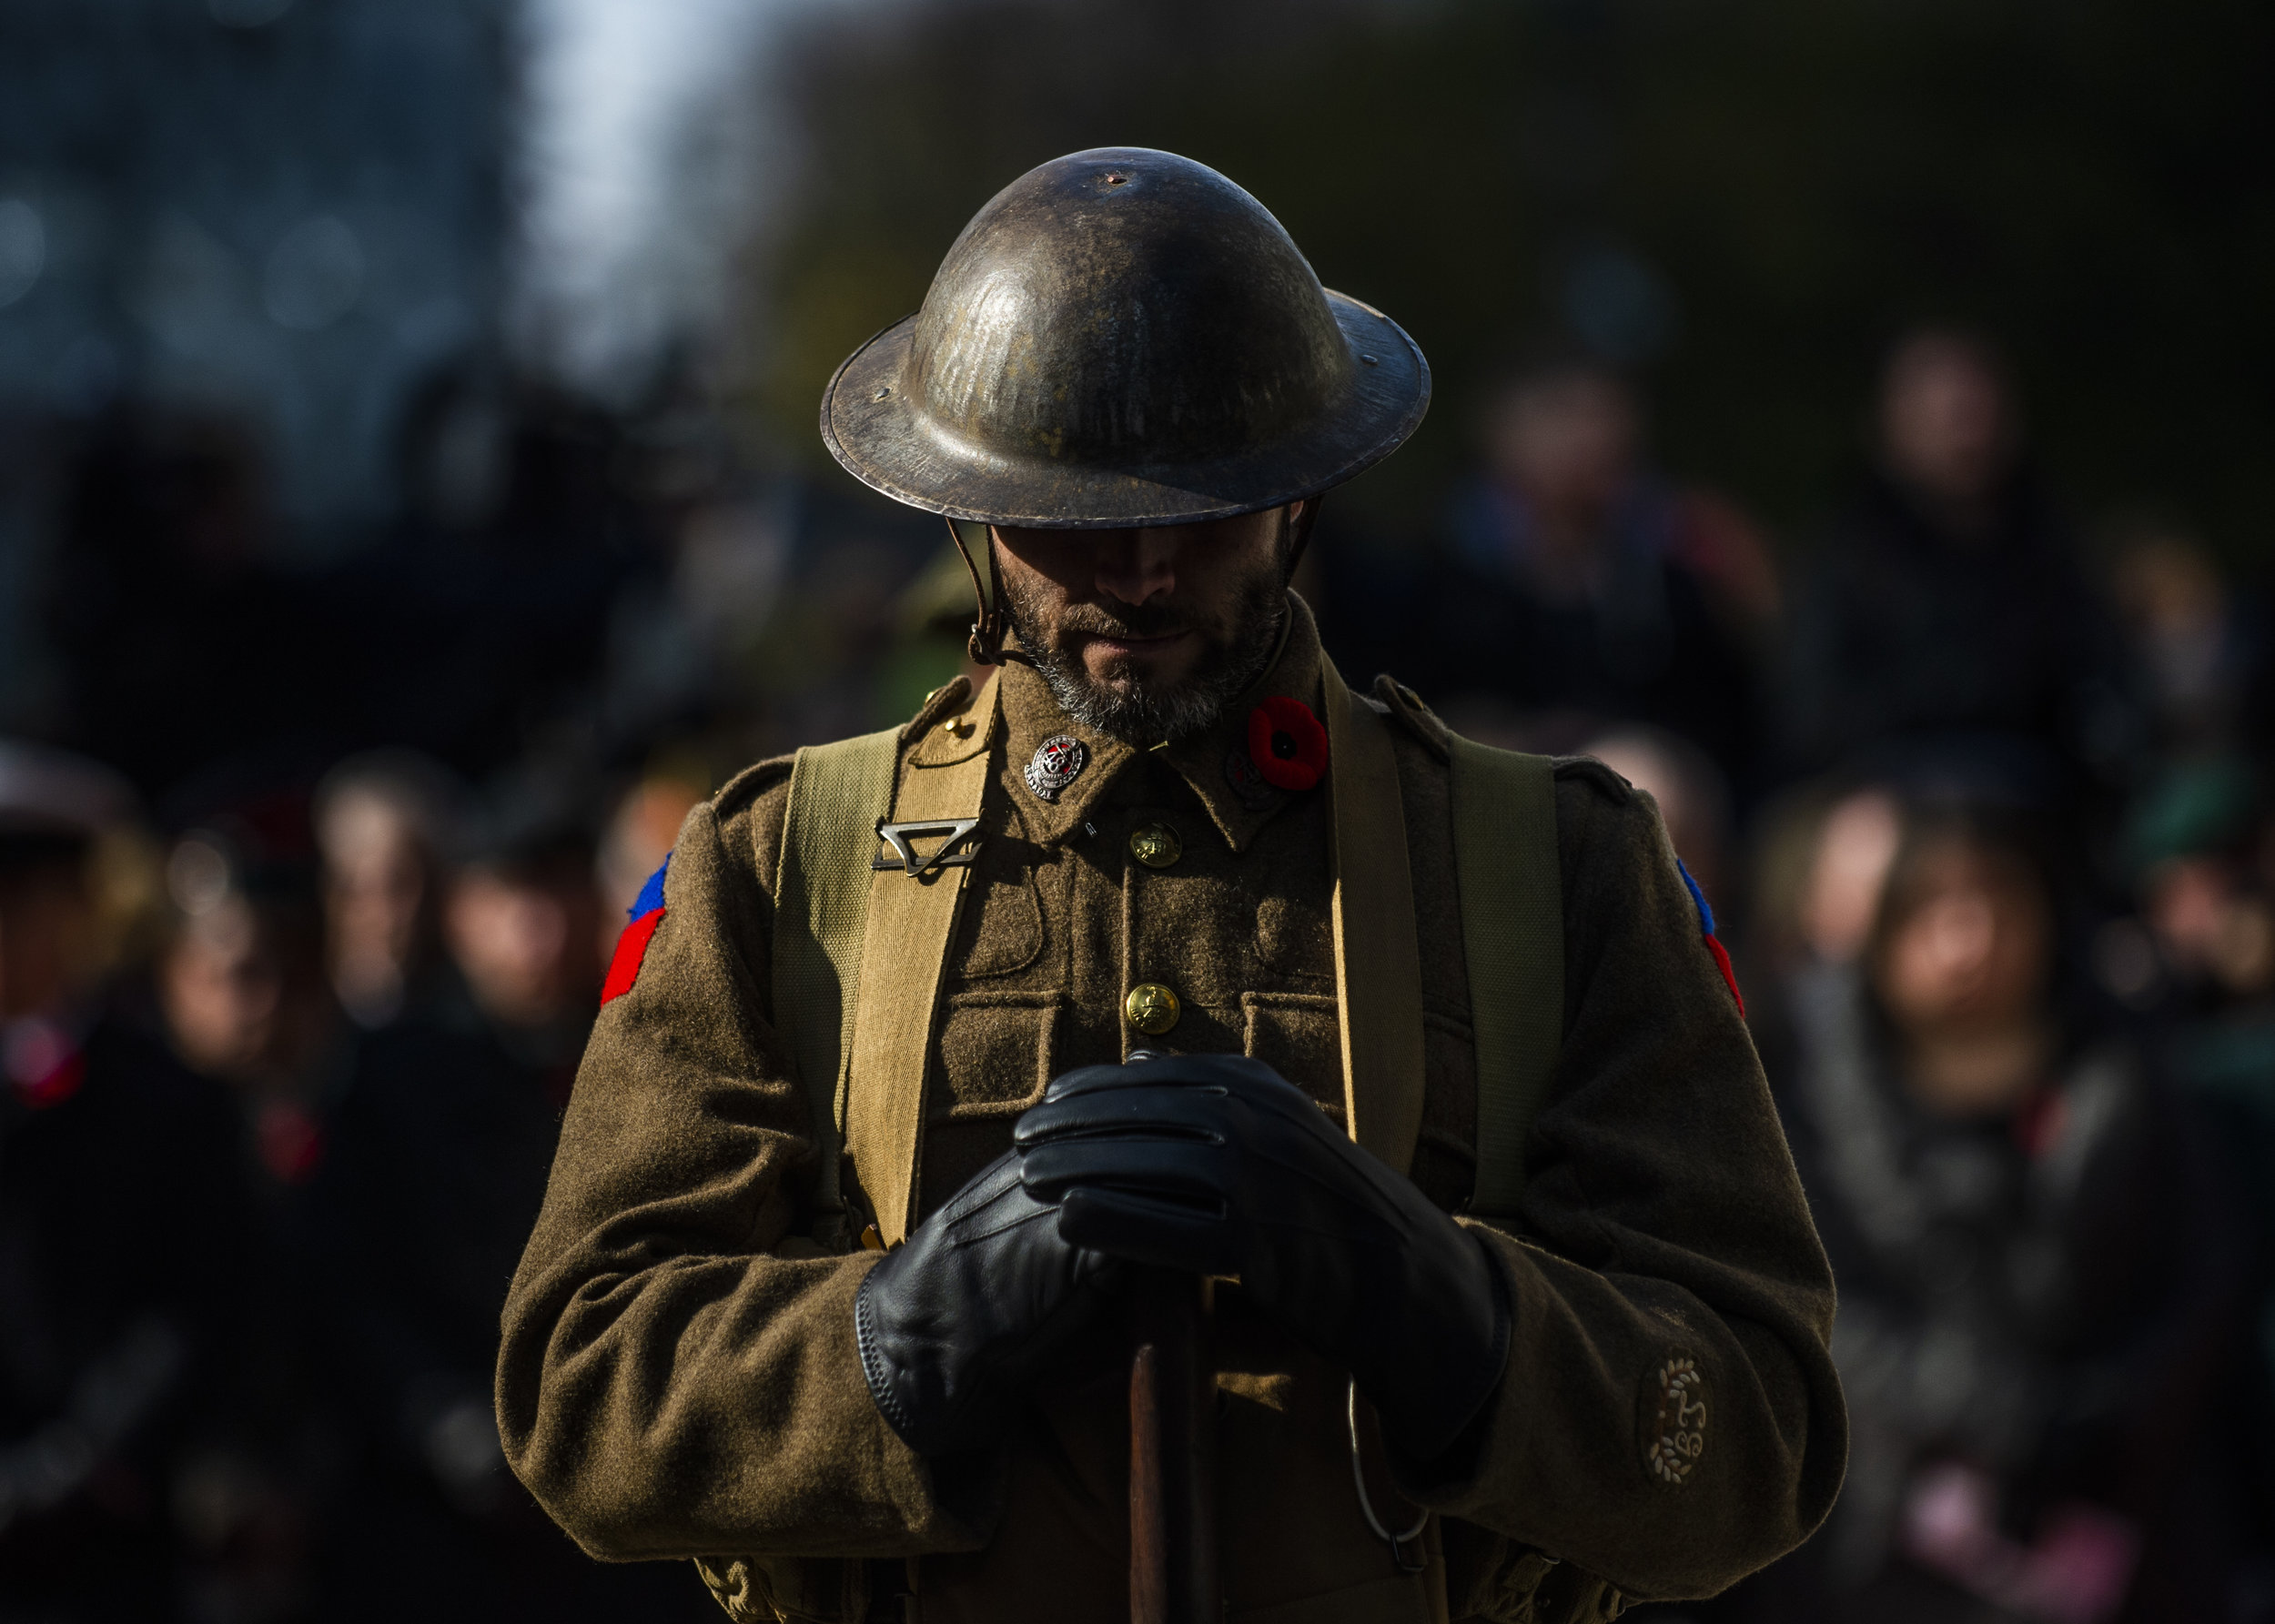 A soldier stands guard at the Old City Hall Cenotaph during a Remembrance Day ceremony in Toronto, Ont. on November 11, 2018.